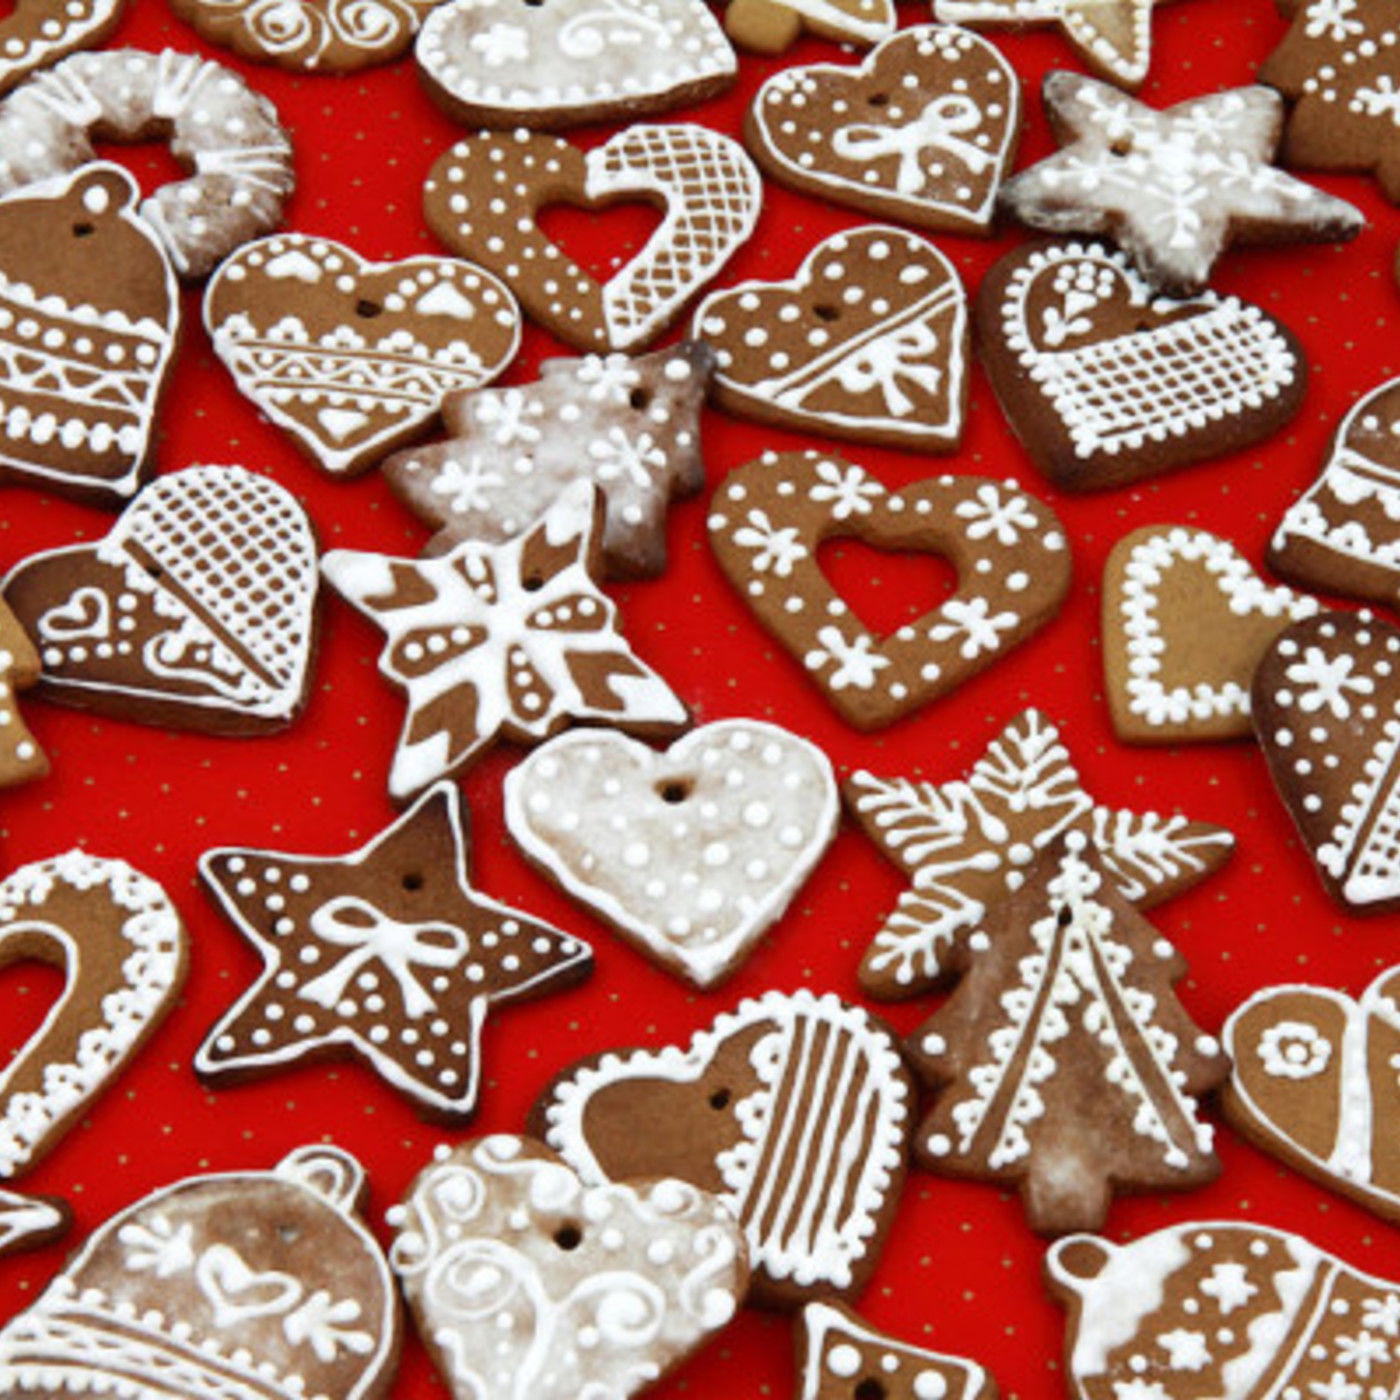 Episode 222: Sugarplums and Gingerbread: A History of Christmas Sweets